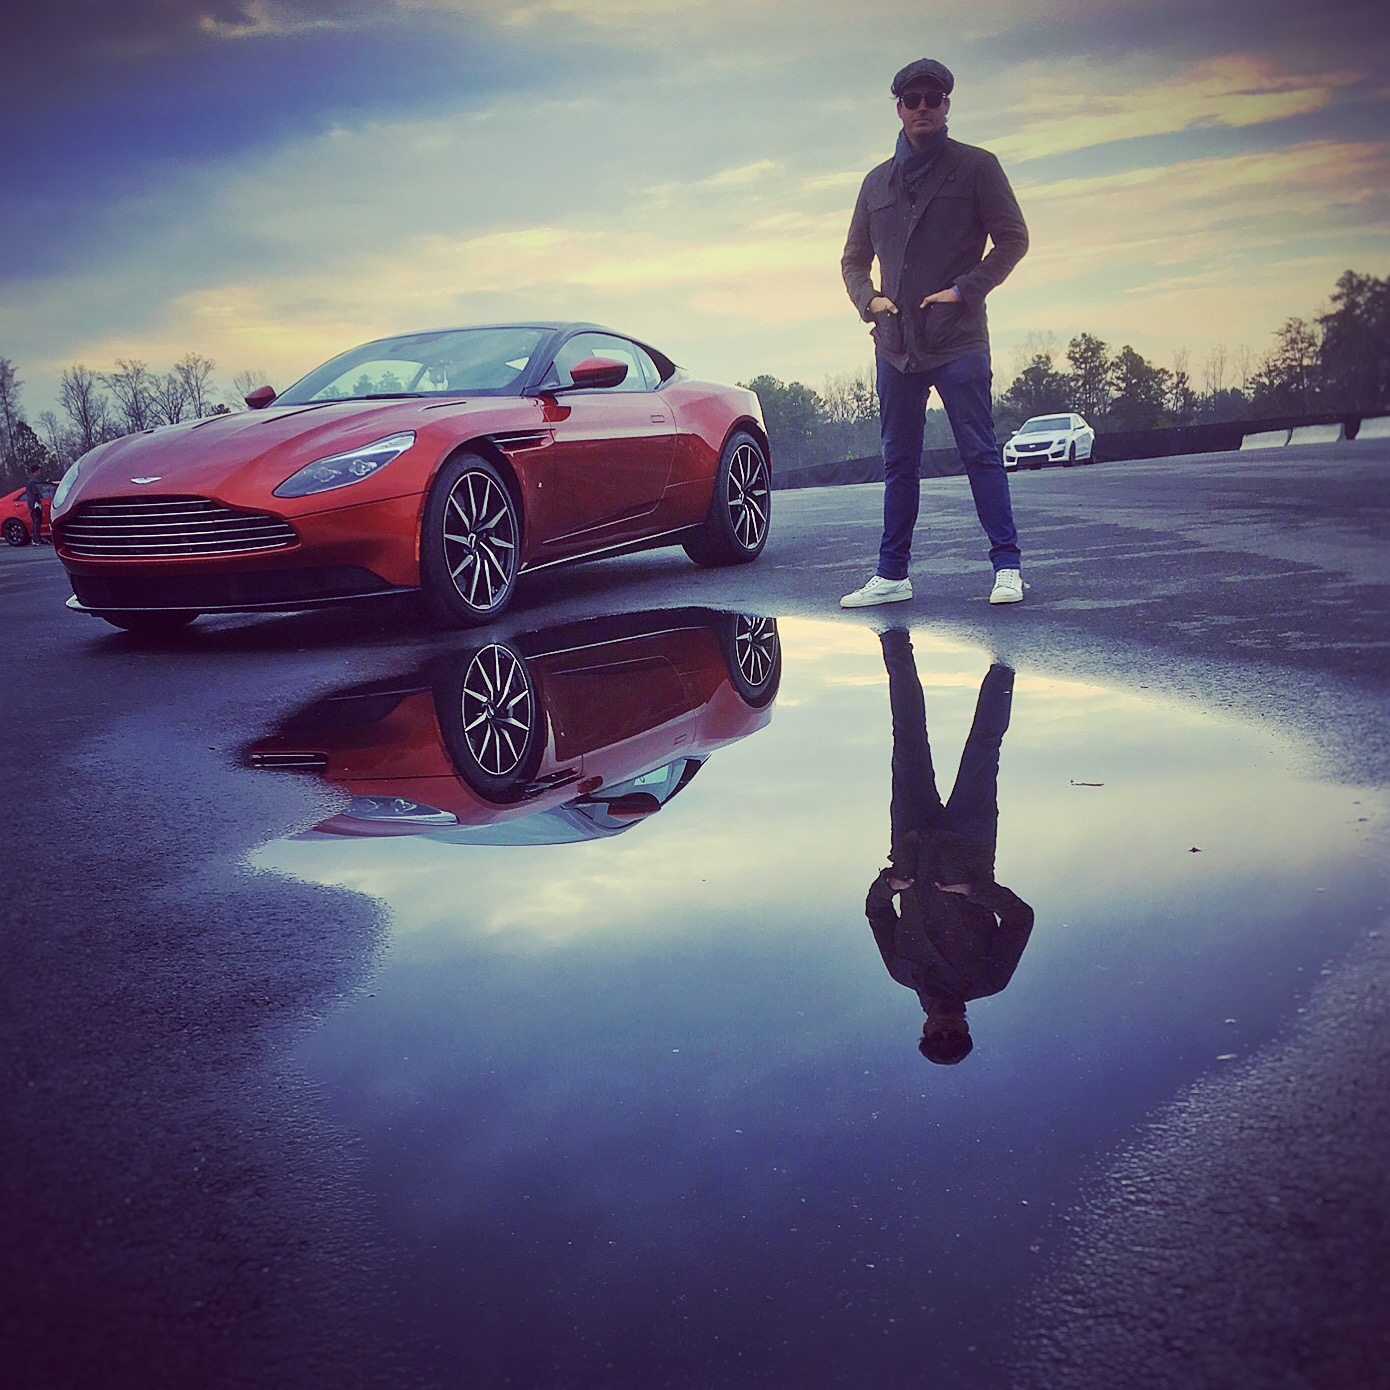 Man standing next to aston martin